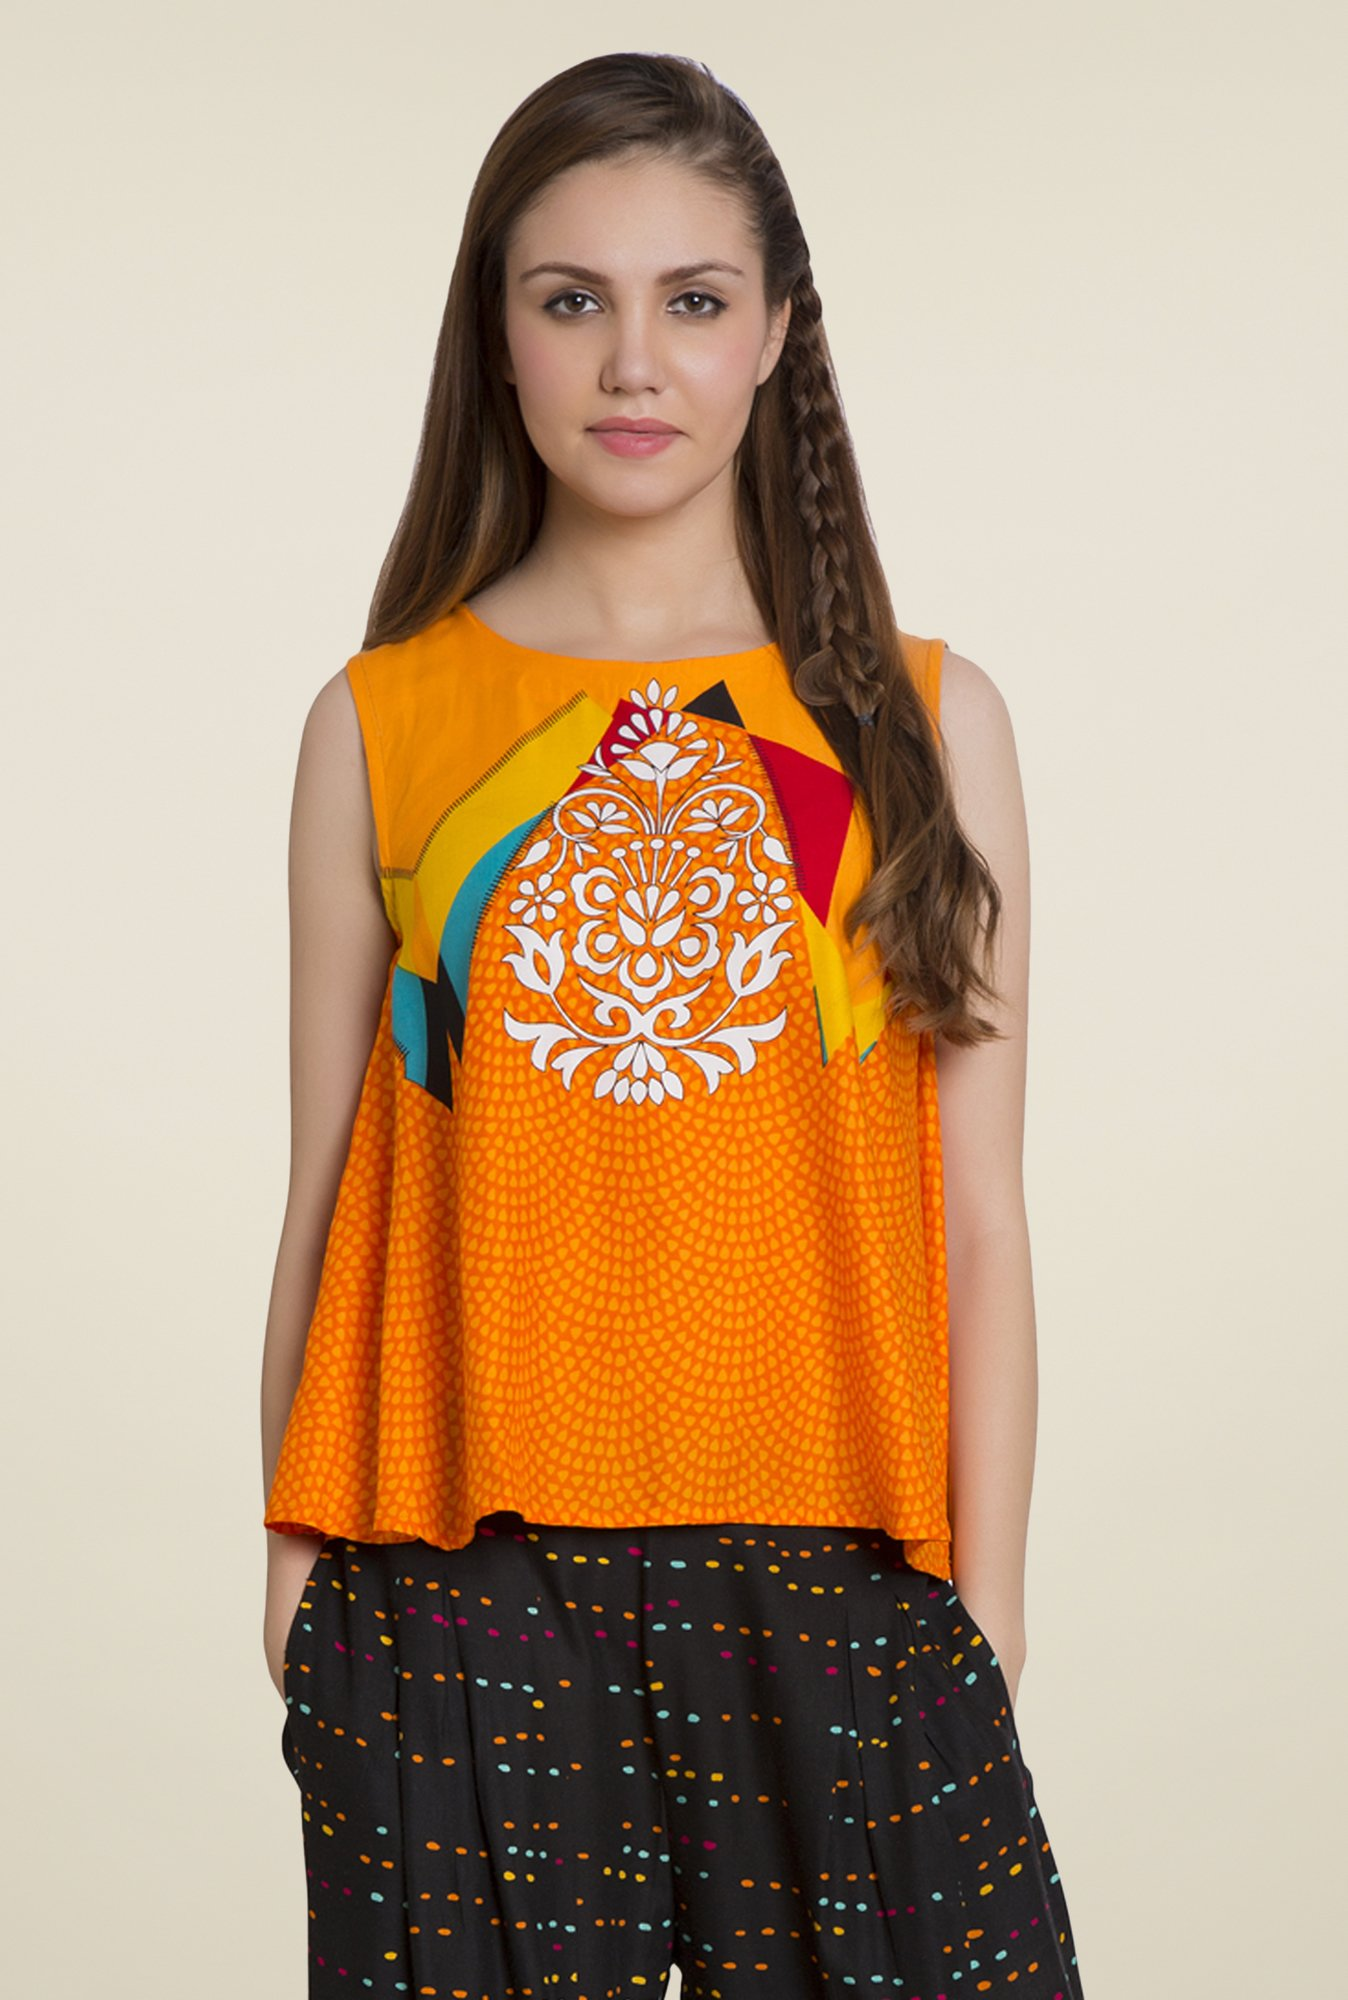 Desi Belle Orange Printed Top